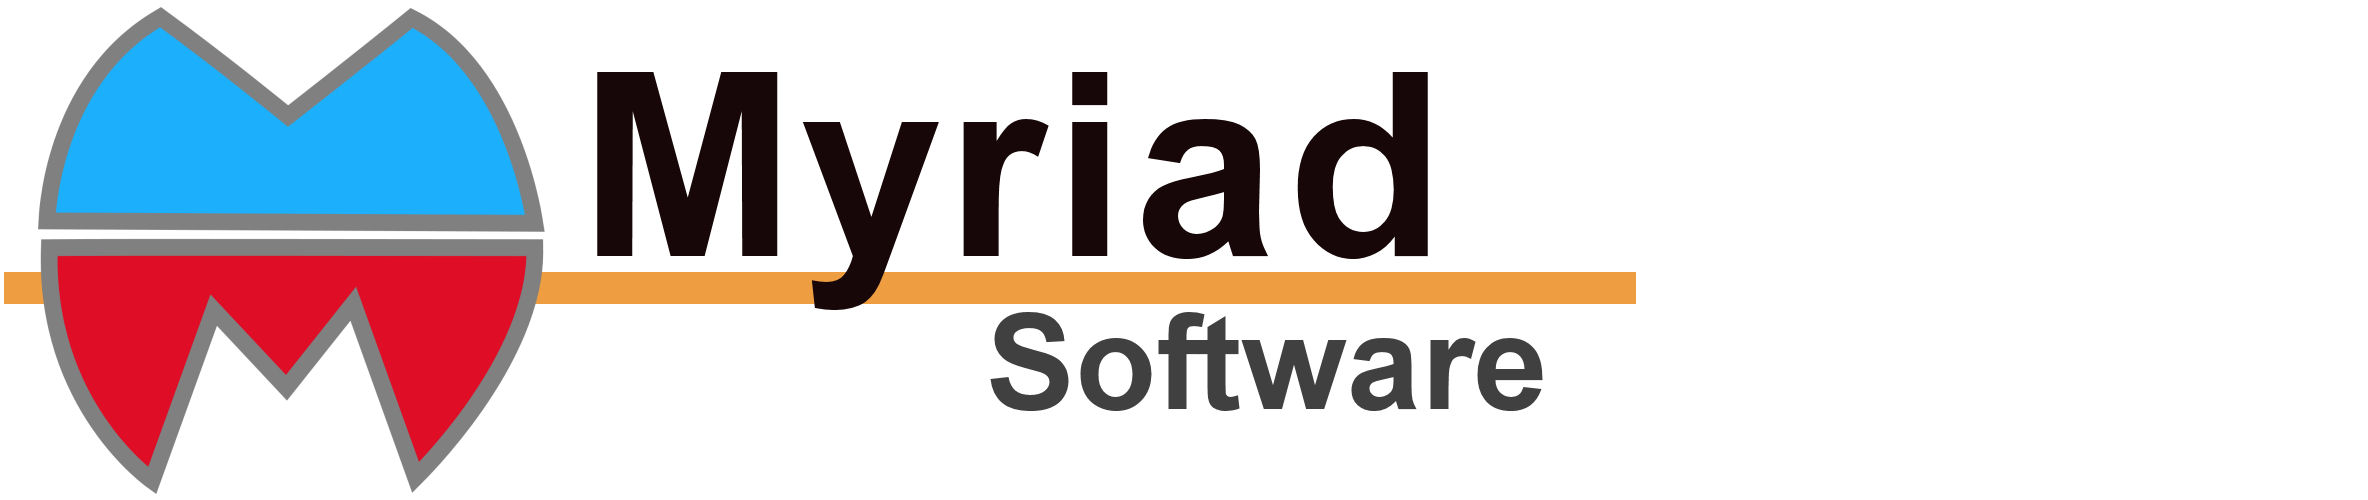 Myriad Software